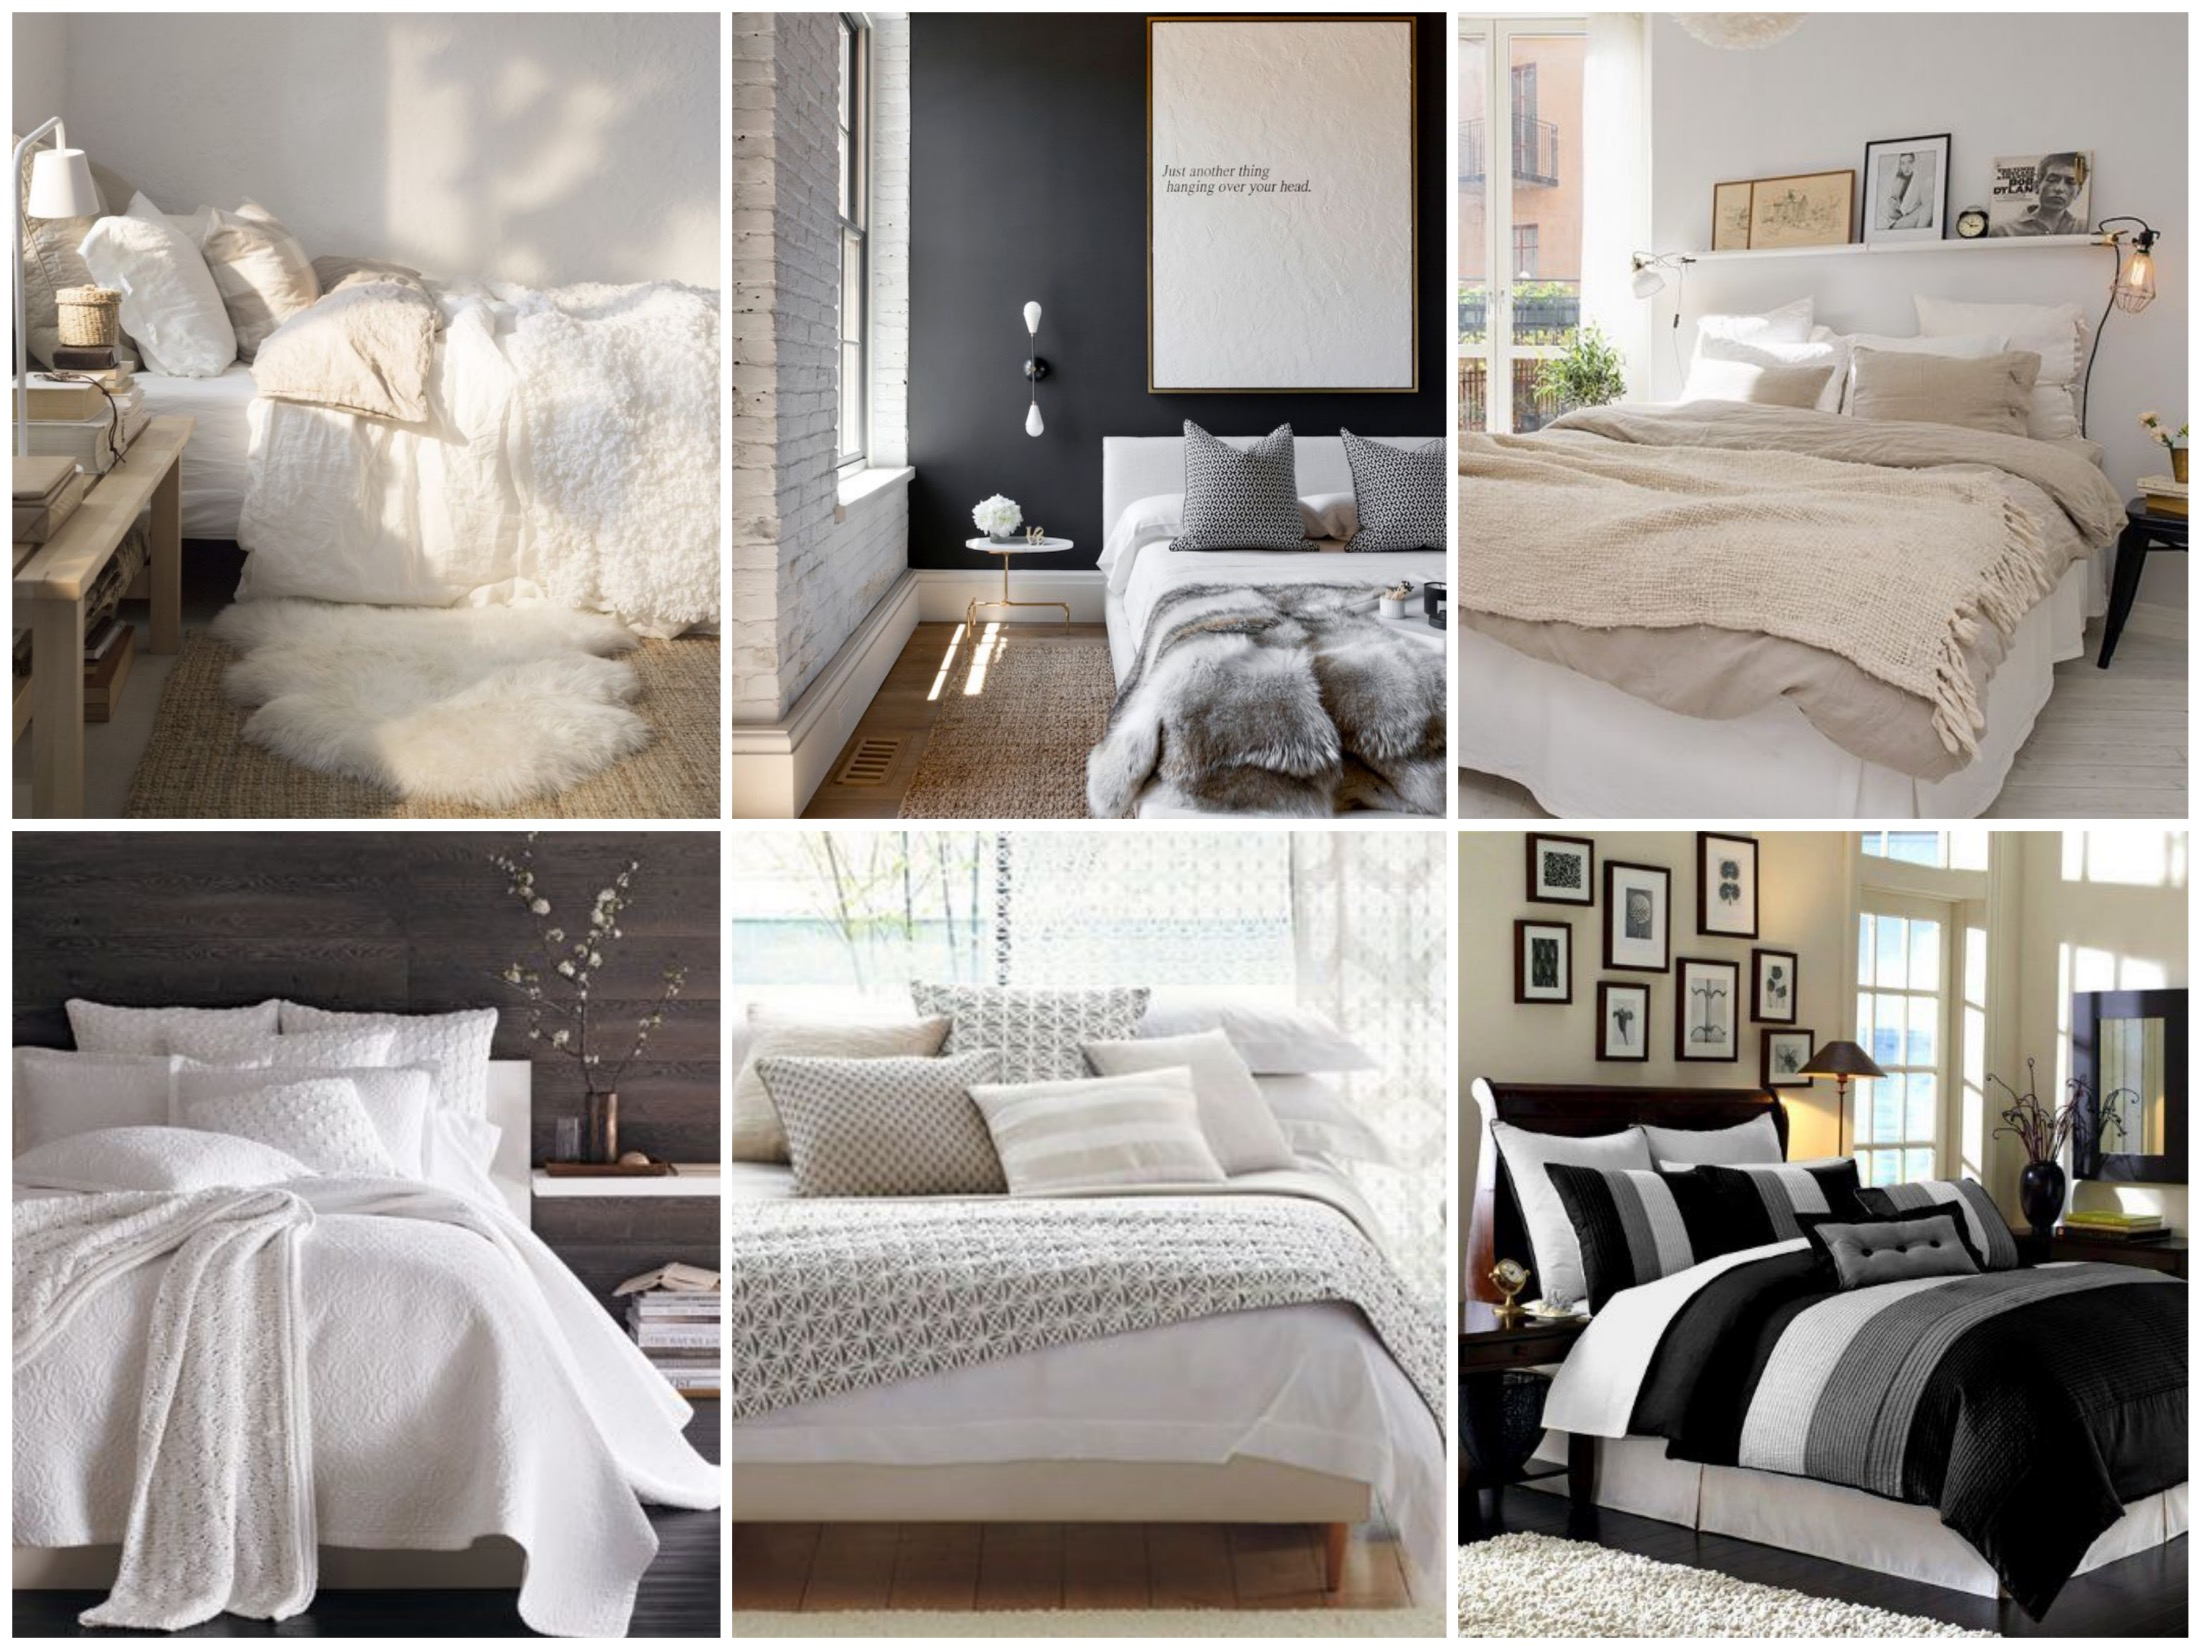 inspirations d co de jolies parures de lit zara home cake and cie. Black Bedroom Furniture Sets. Home Design Ideas